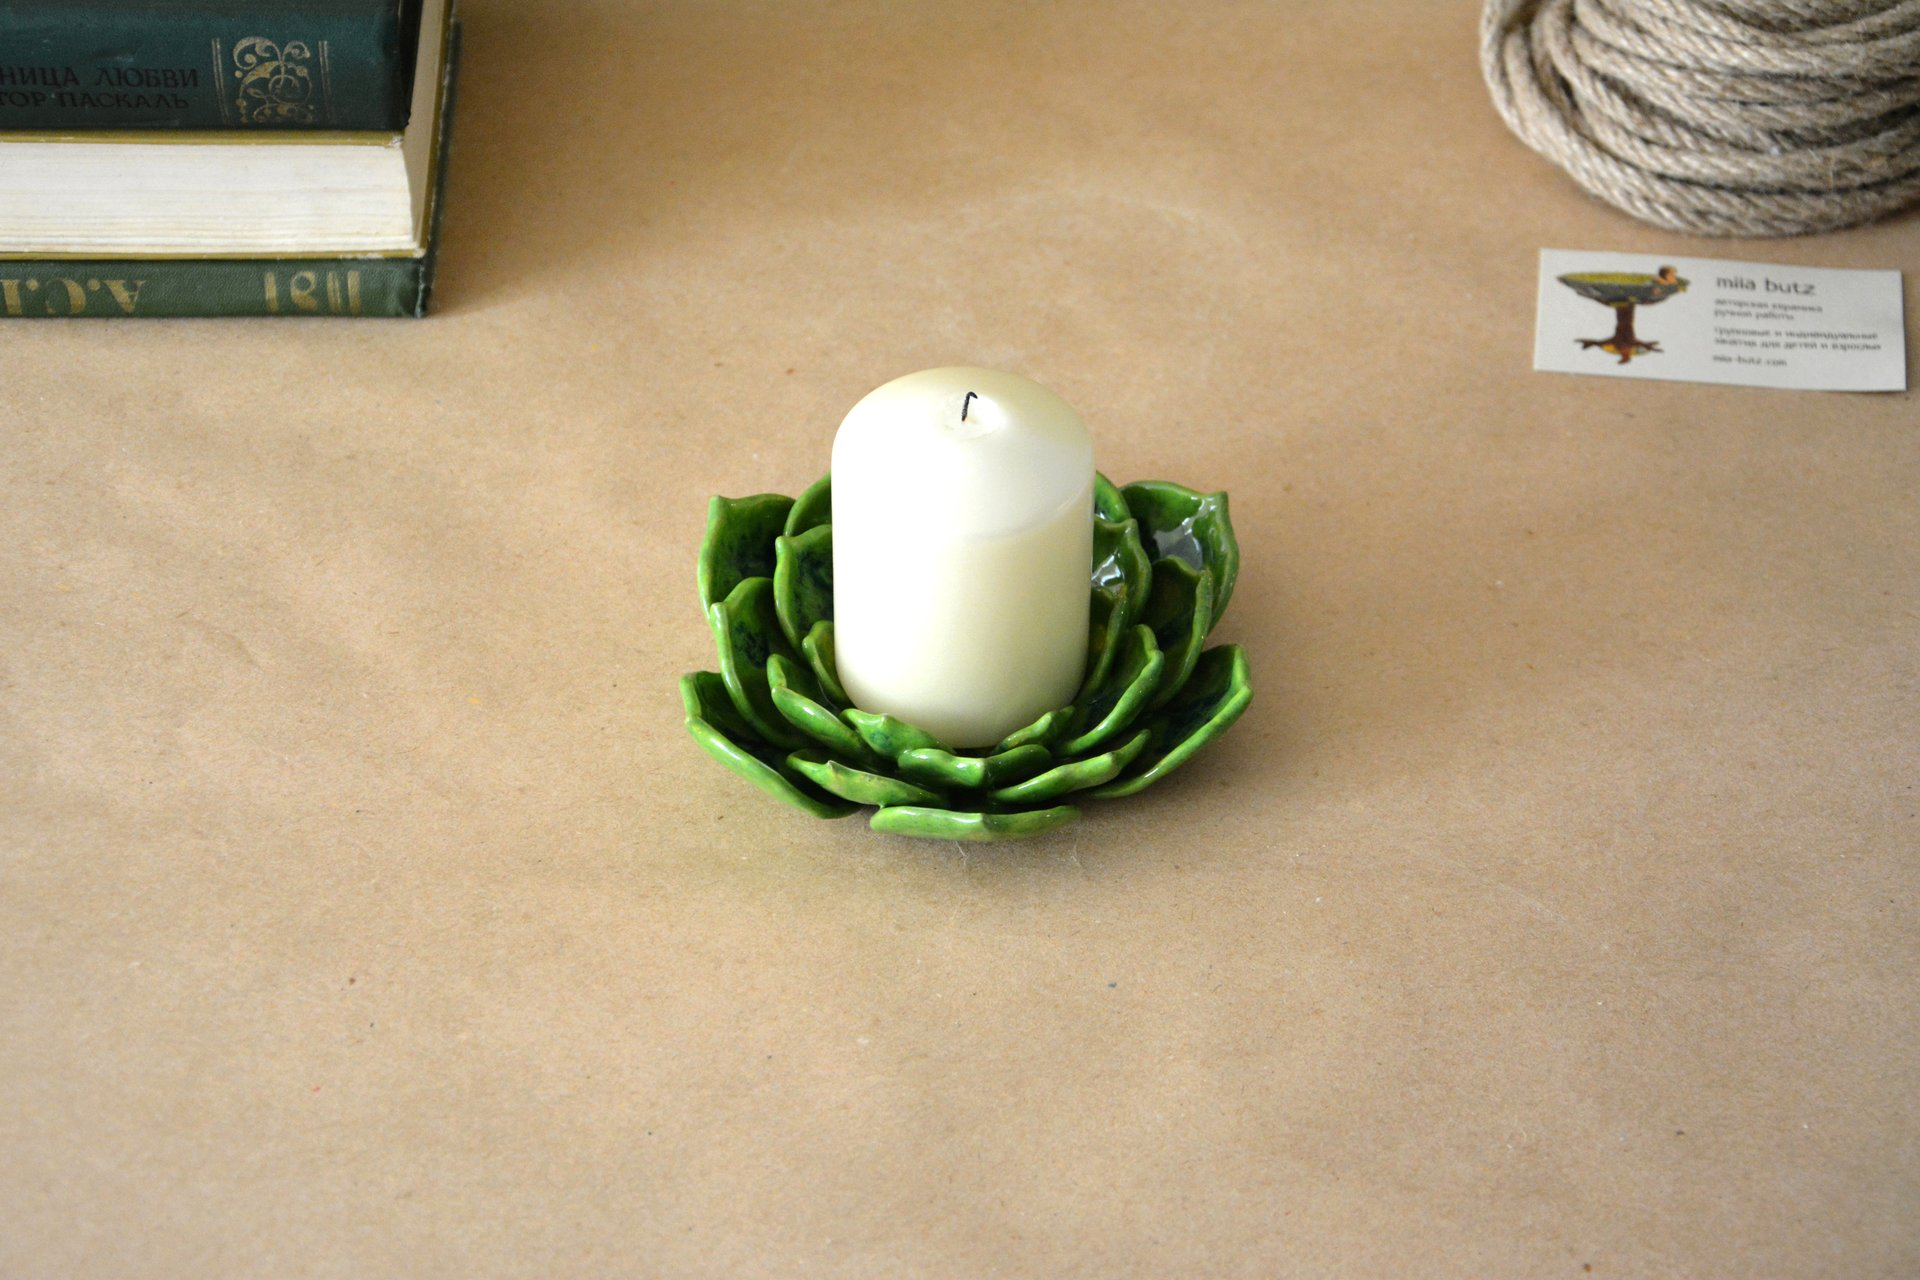 Light green candle holder a Succulent - Ceramic Candl-holders, diameter - 14 cm, photo 2 of 4.